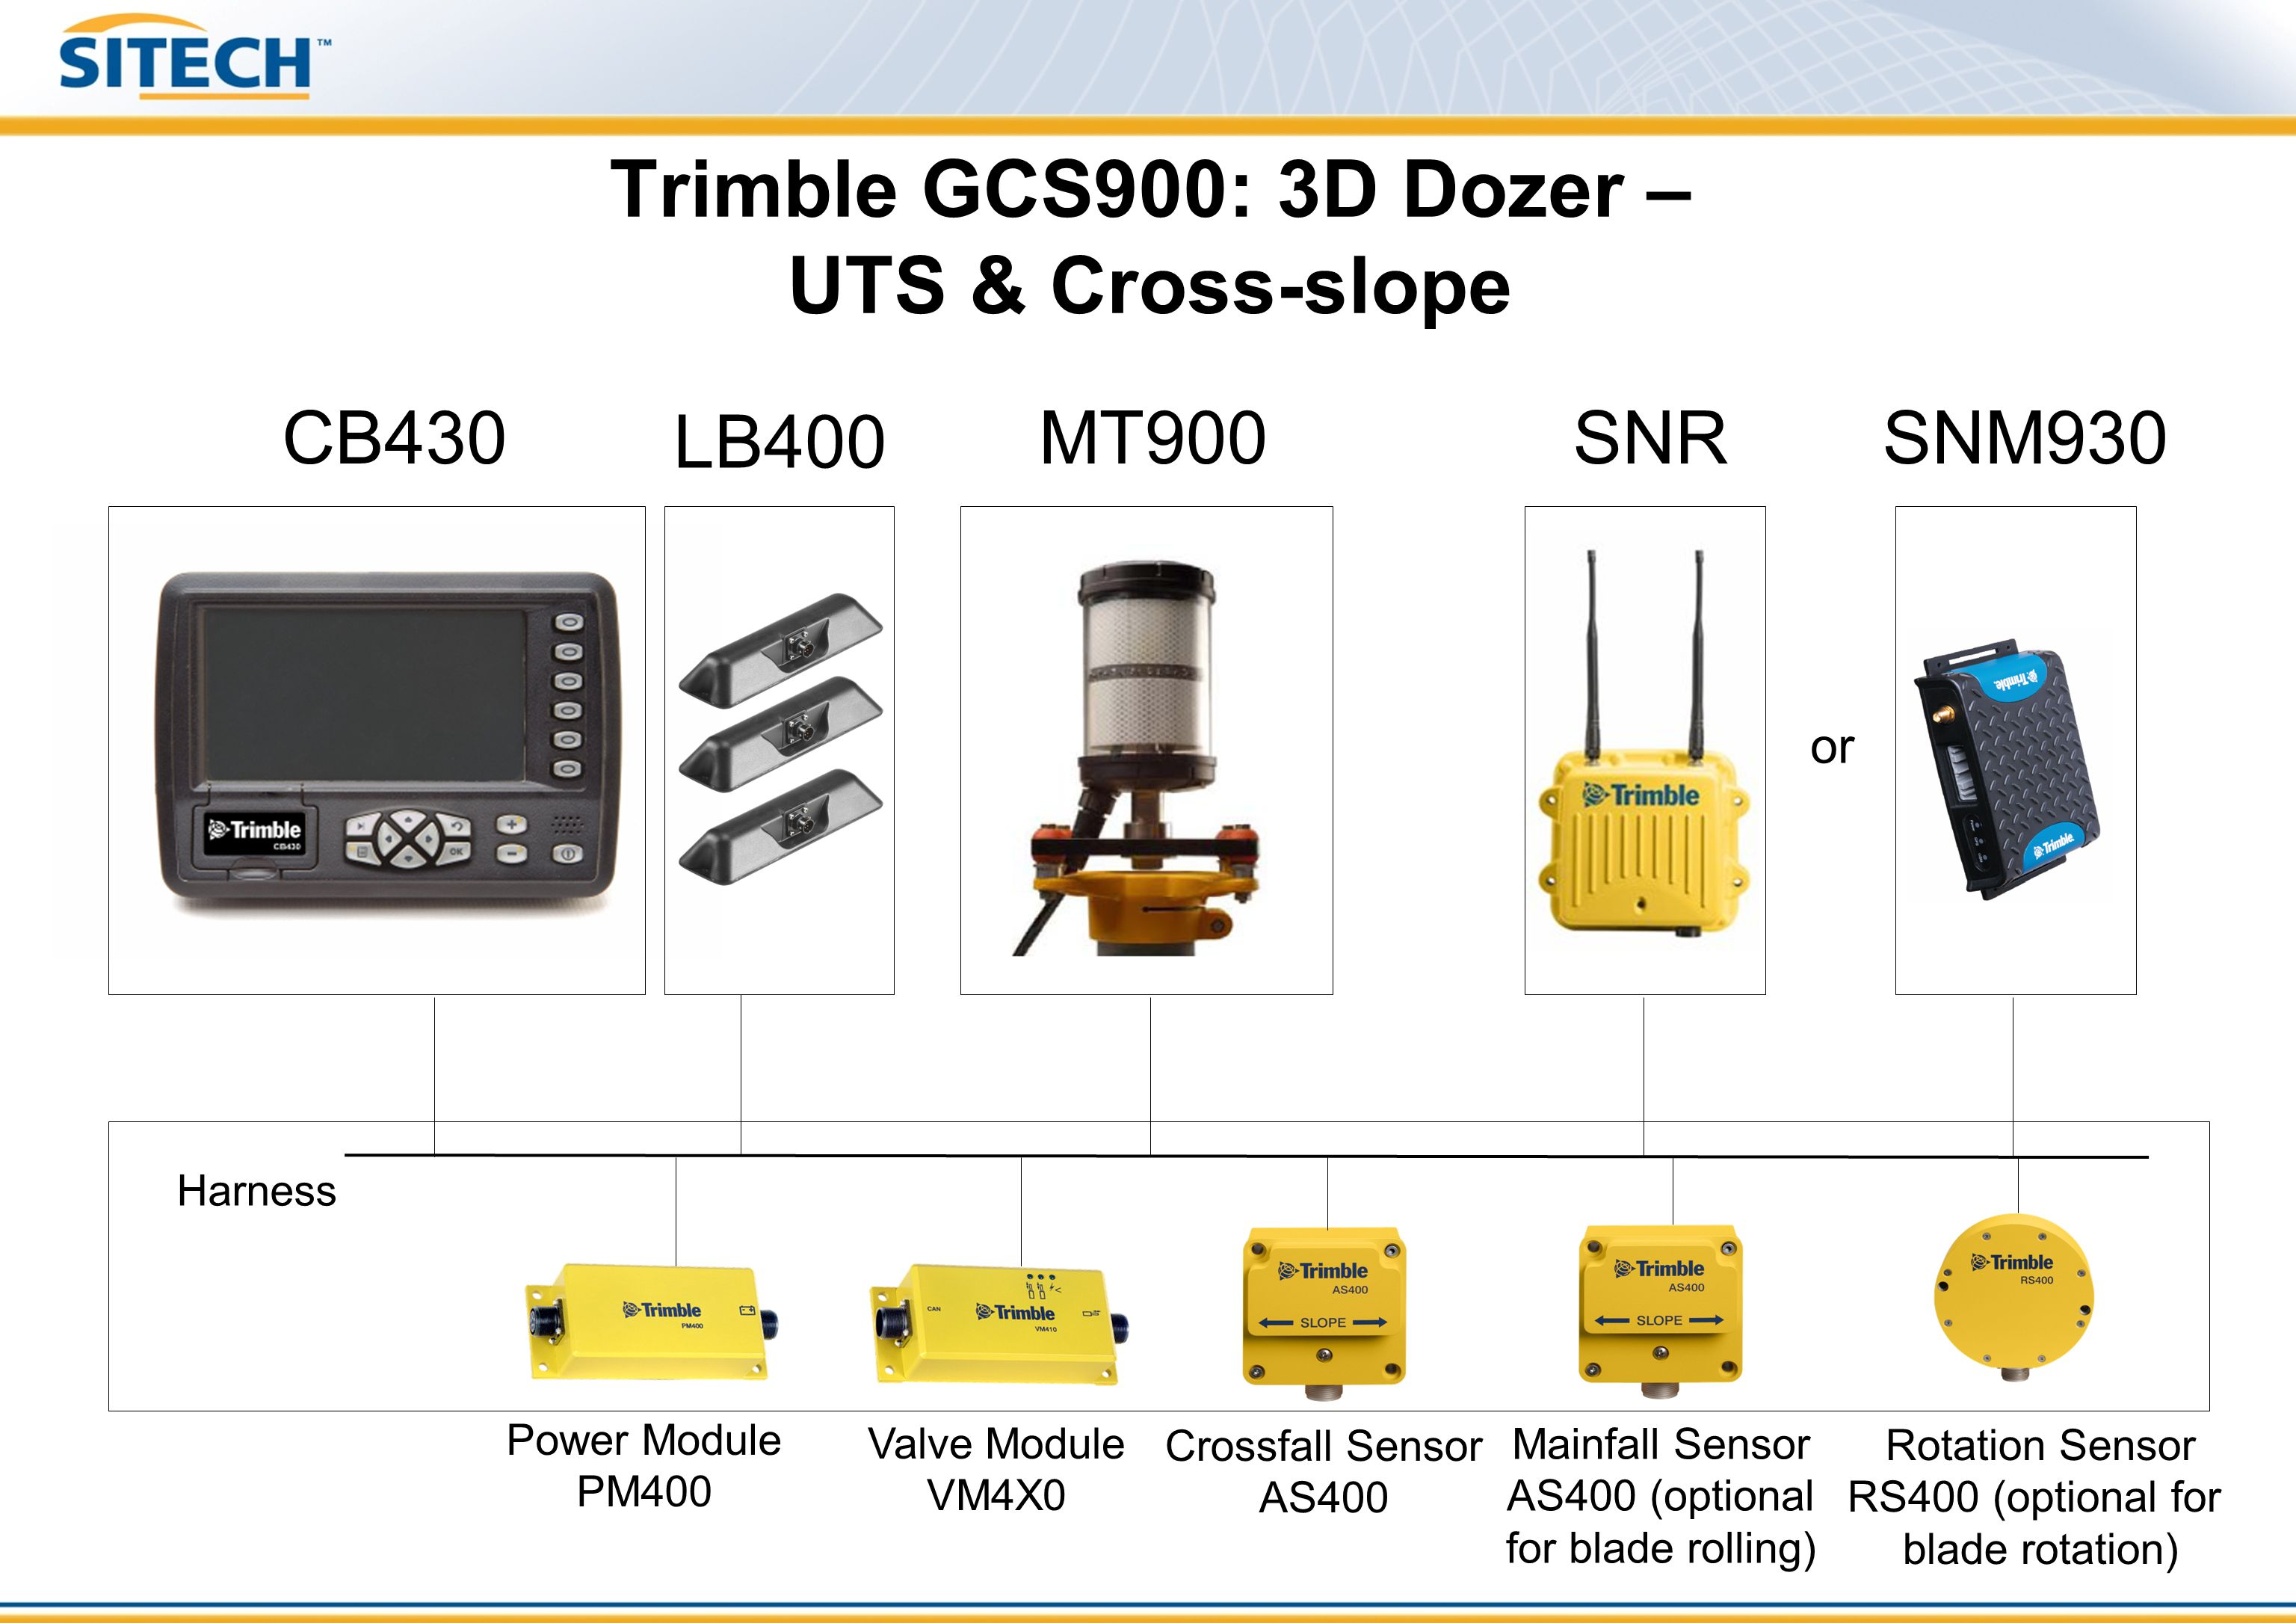 CCS900 - Compaction Control System for Rollers  3D Compaction Control System for Soil Compactors  In-cab QA/QC indicating system  Configurations: –GPS/GLONASS Single roof or drum mounted with Cross-Slope Sensor AS400 –GPS/GLONASS Dual drum mounted –UTS configuration drum mounted with Cross-Slope Sensor AS400 –Compaction Sensor CM310 as an option  Provides compaction information over the entire job –CMV mapping, on-screen graphical indication and map inspection –RMV on-screen indication –Cut/Fill mapping –Proofing mode  Trimble SiteVision® Office Compaction Module for analysis and reporting and documentation